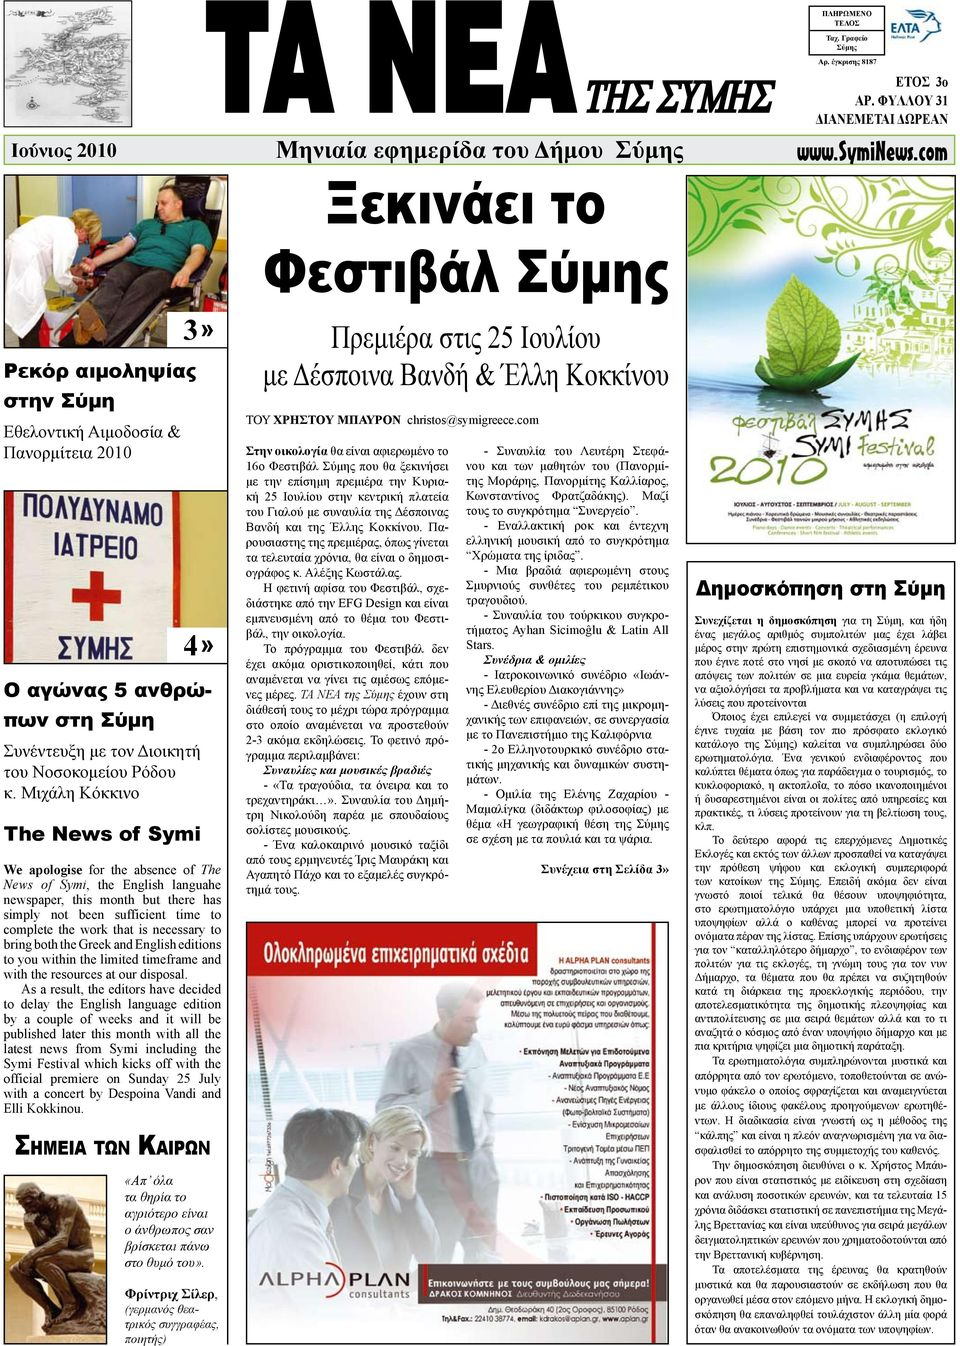 Μιχάλη Κόκκινο The News of Symi We apologise for the absence of The News of Symi, the English languahe newspaper, this month but there has simply not been sufficient time to complete the work that is